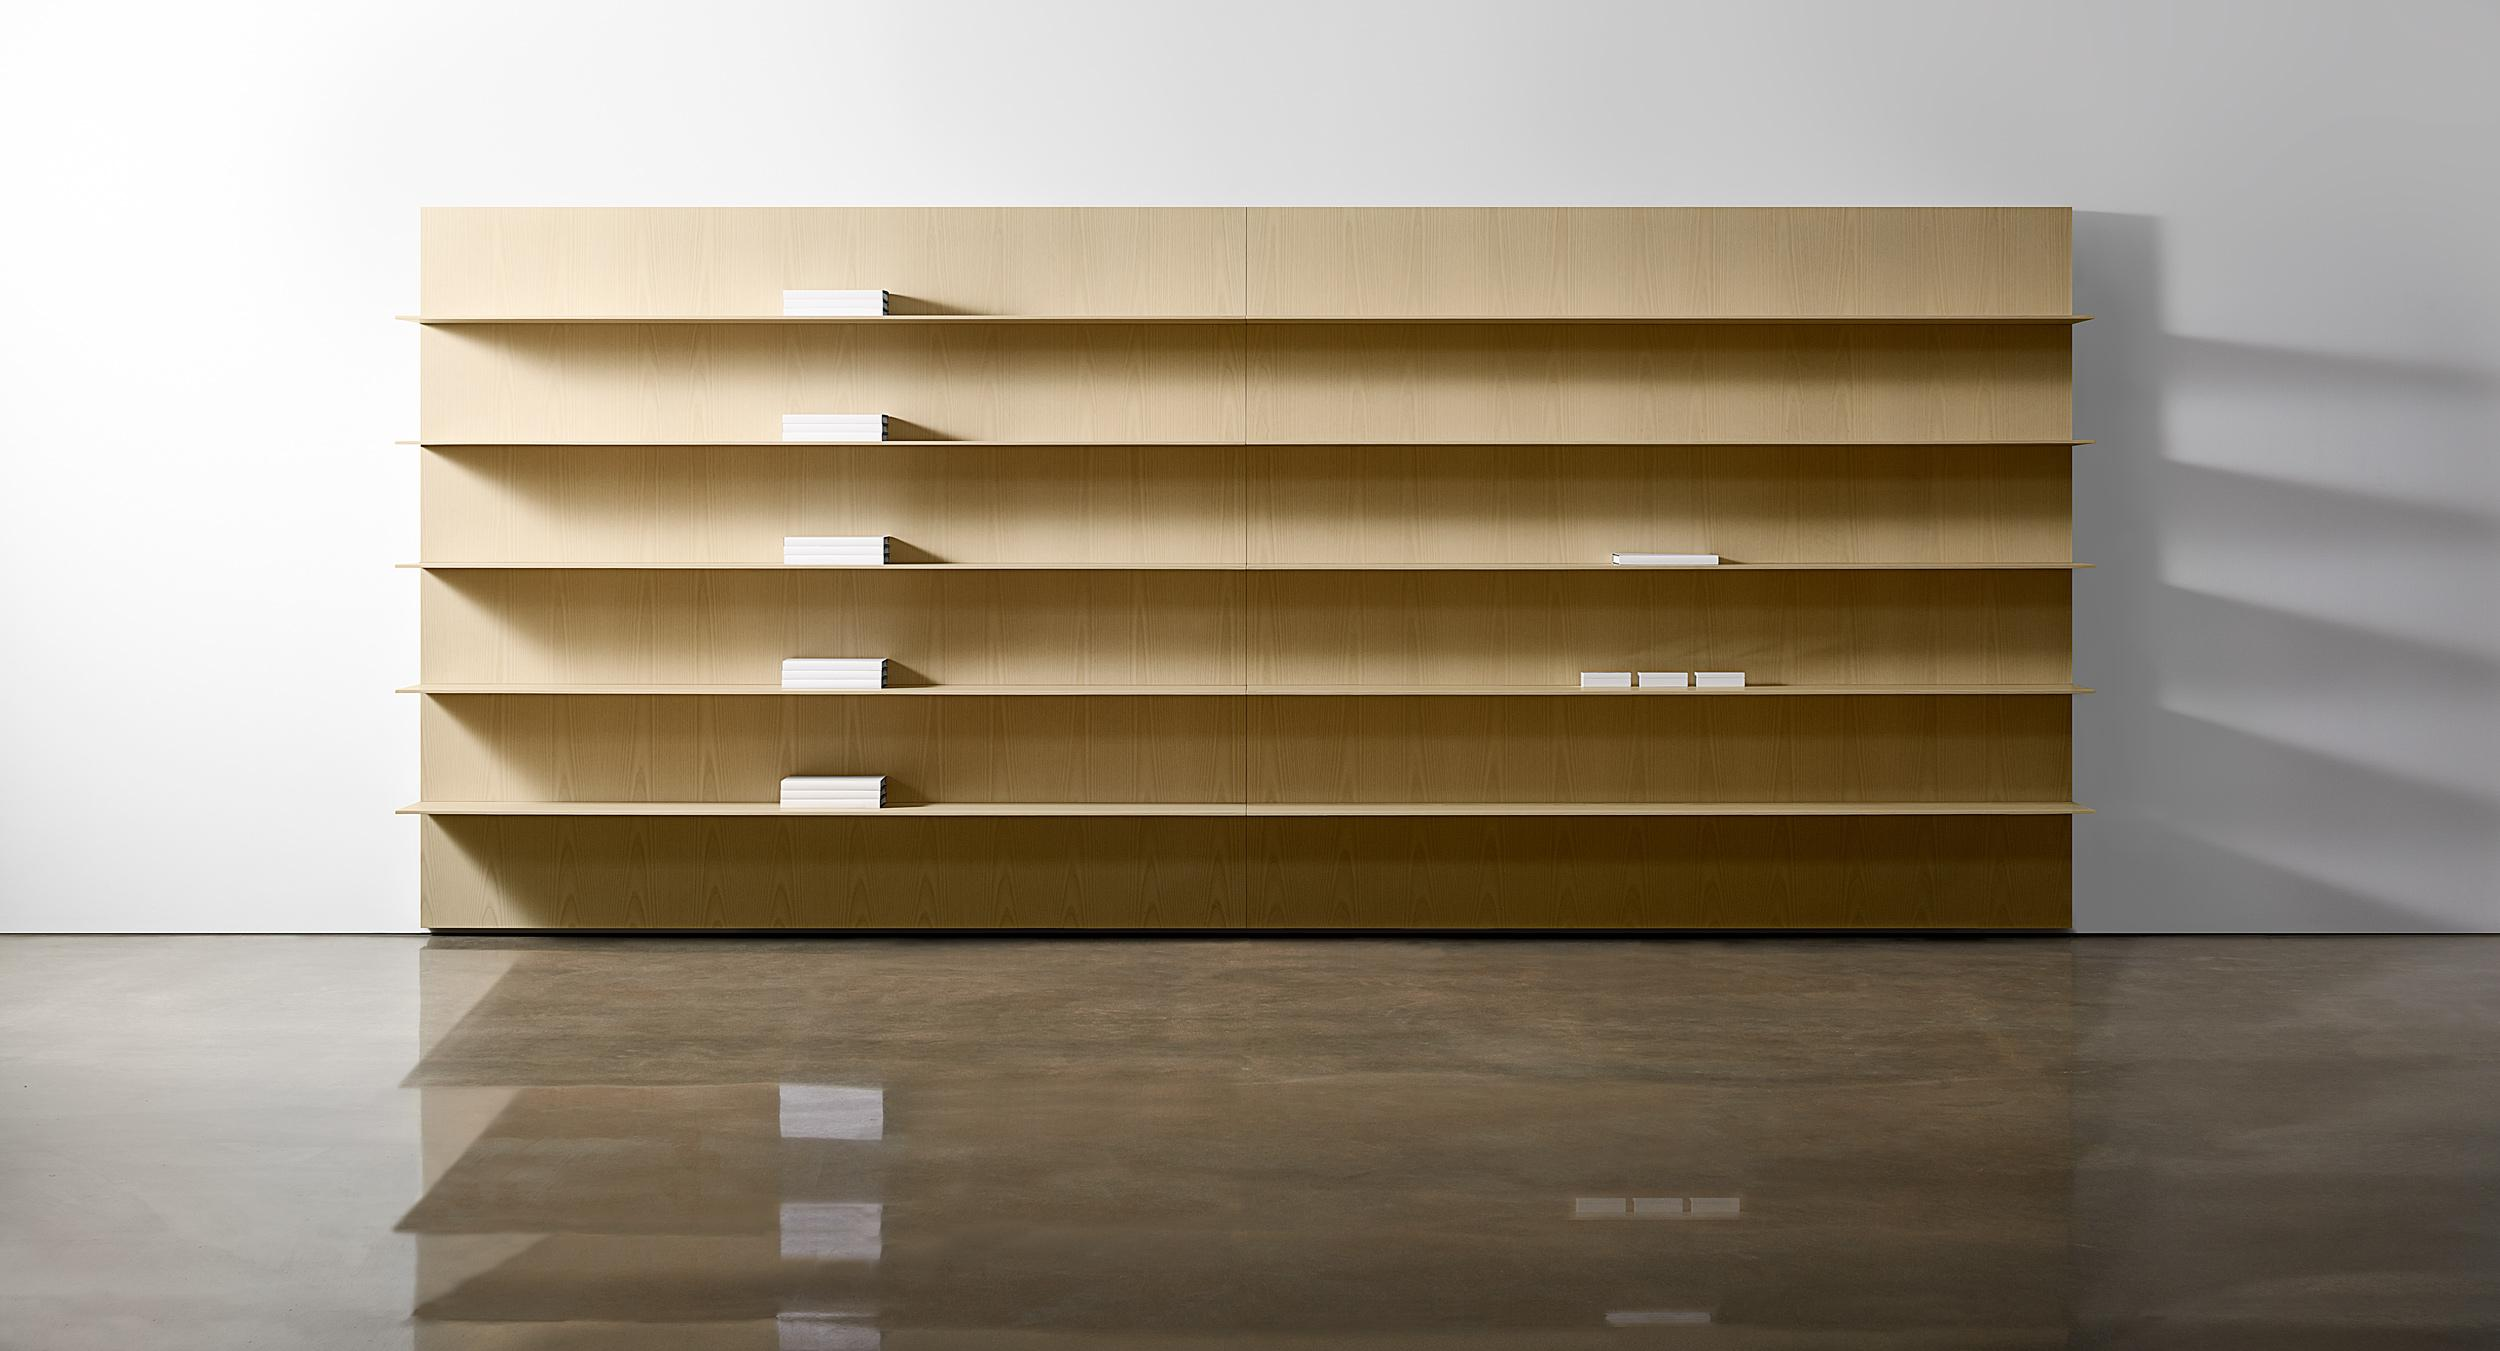 Defy gravity with patented thin wood shelving.